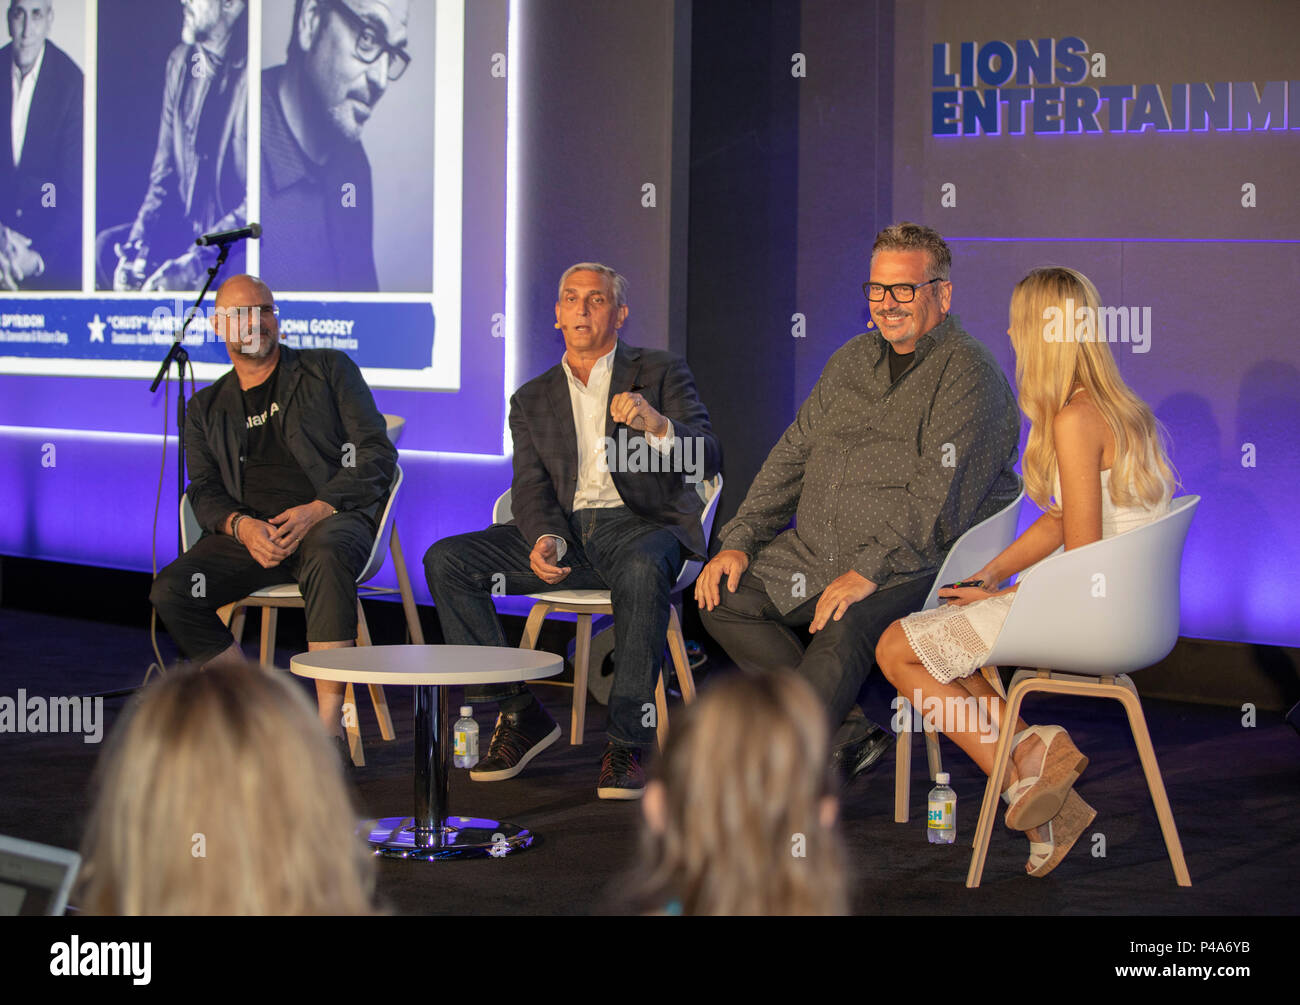 Cannes, France, 21 June 2018, Anthony 'Chusy' Haney-Jardine, Butch Spyridon,John Godsey and Allison Pierce attend - Selling with Soul: Making Authentic Connections Through Story and Song at Cannes Lions Festival - International Festival of Creativity © ifnm / Alamy Live News - Stock Image